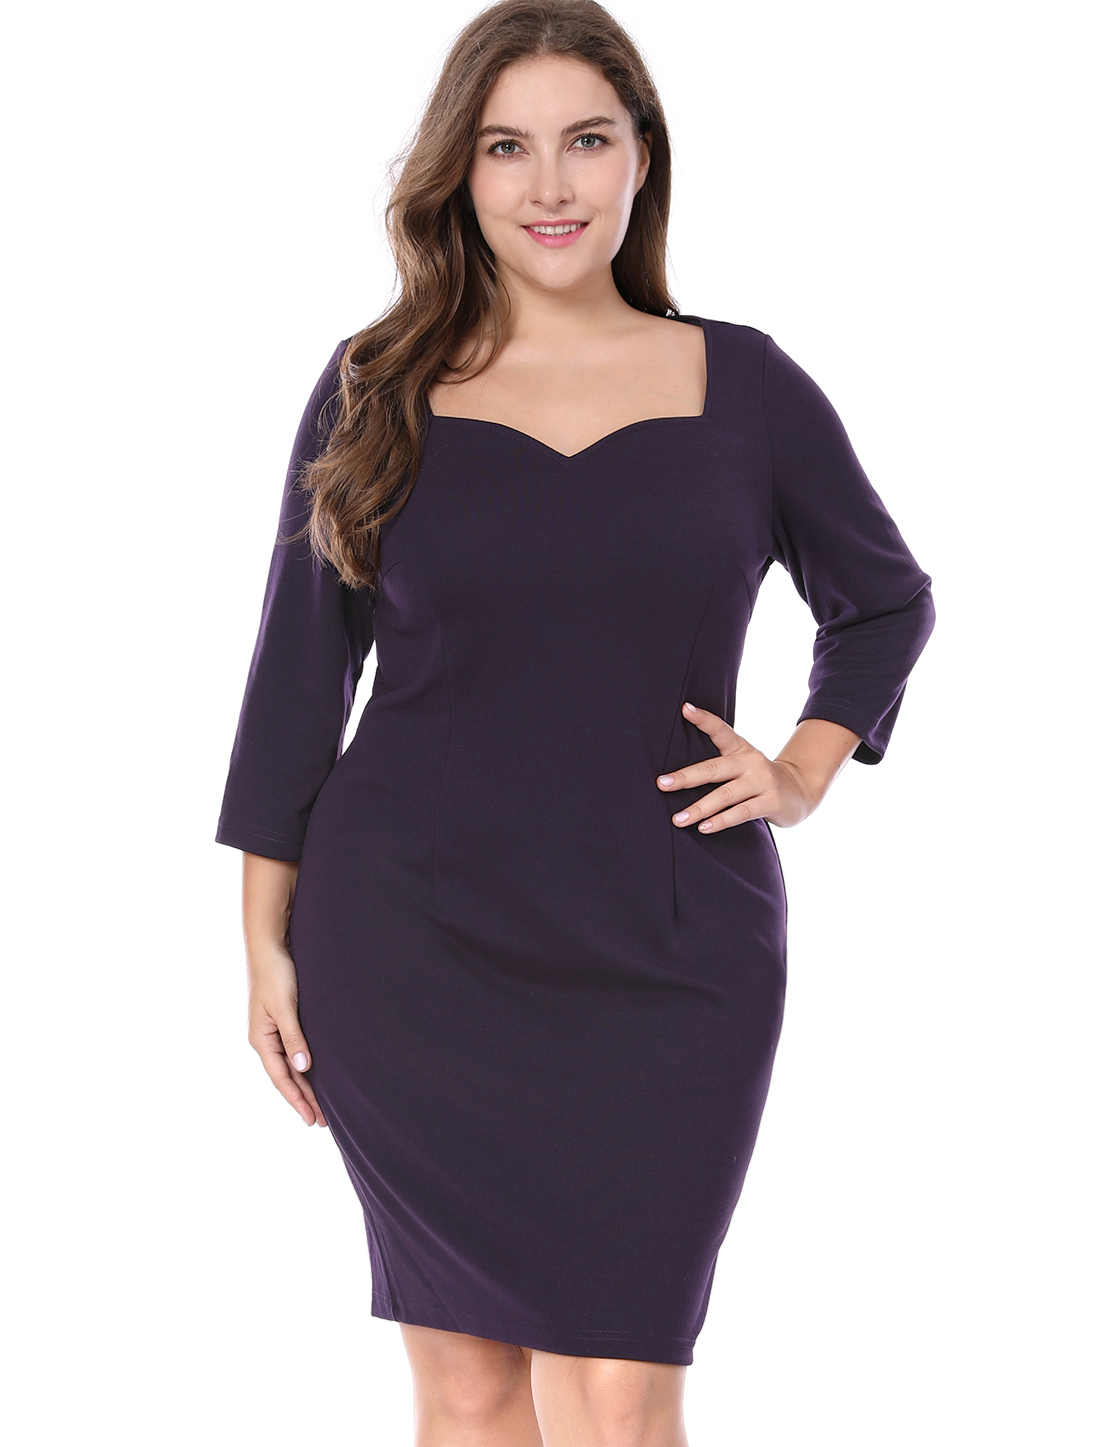 Women Plus Size Sweetheart Neckline 3/4 Sleeves Above Knee Slim Fit Dress Purple 1X